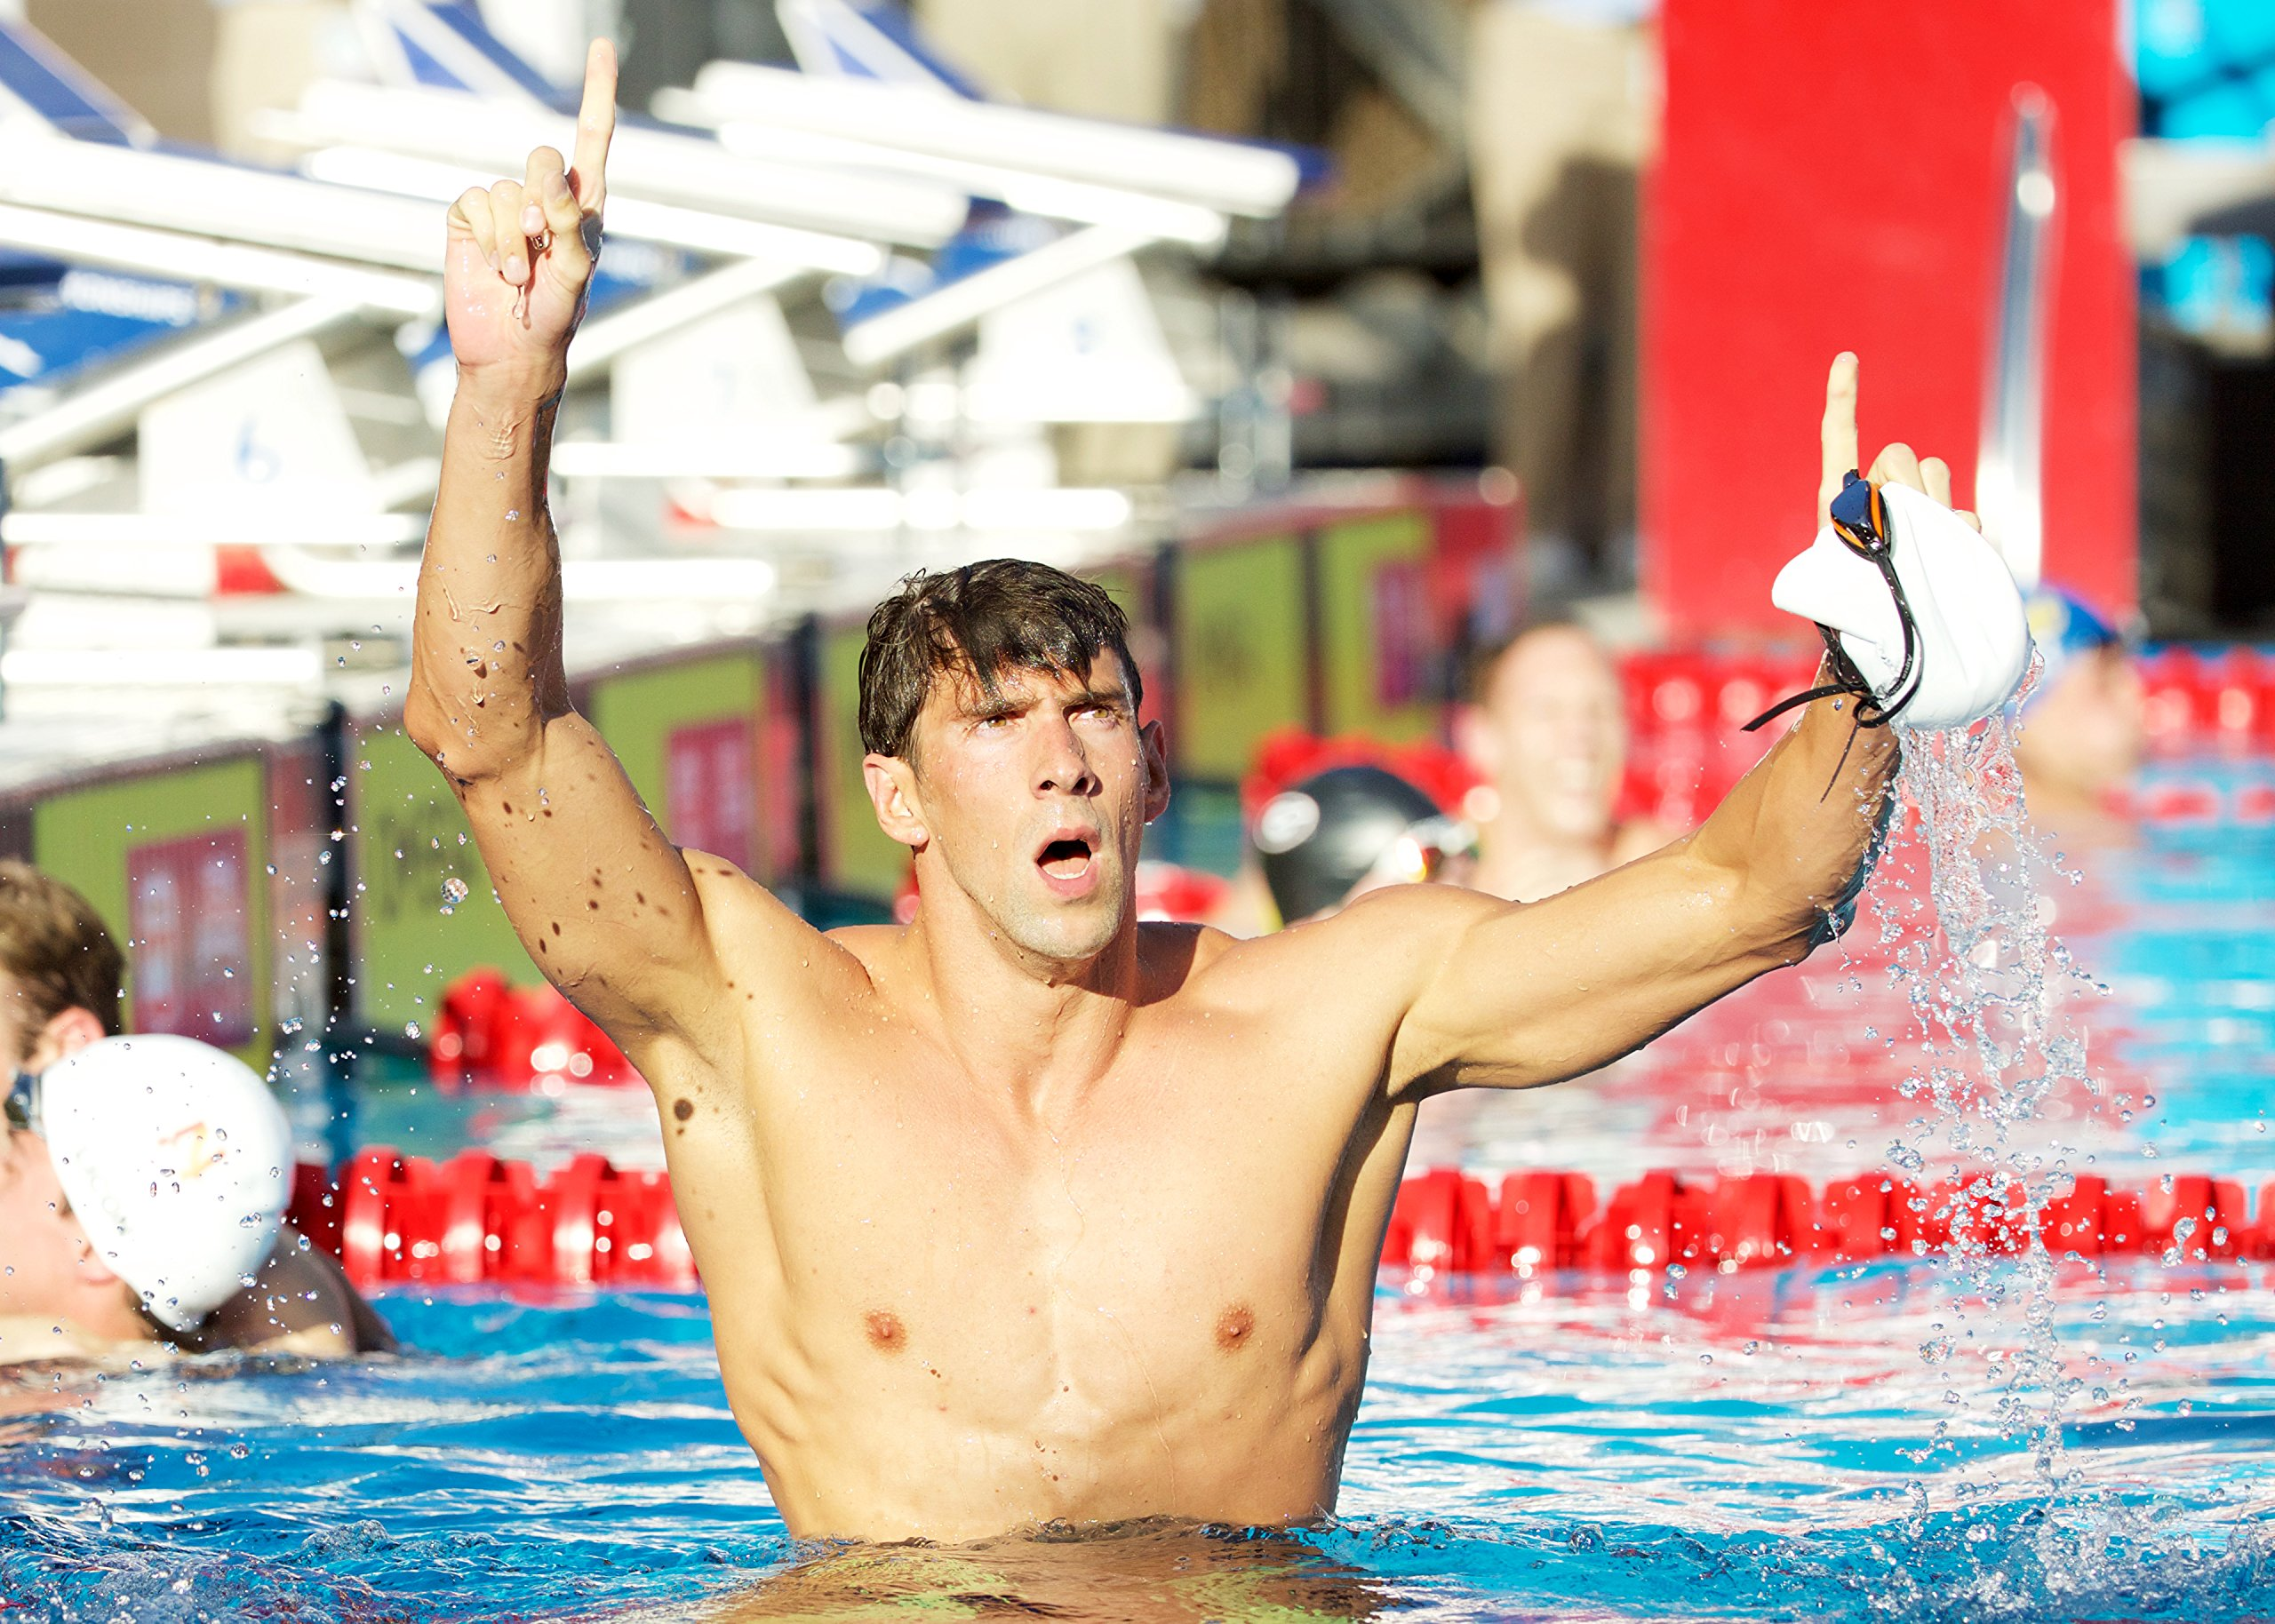 MP Michael Phelps XCEED Swimming Goggles, Mirrored Lens, Yellow/Black Frame by MP Michael Phelps (Image #6)